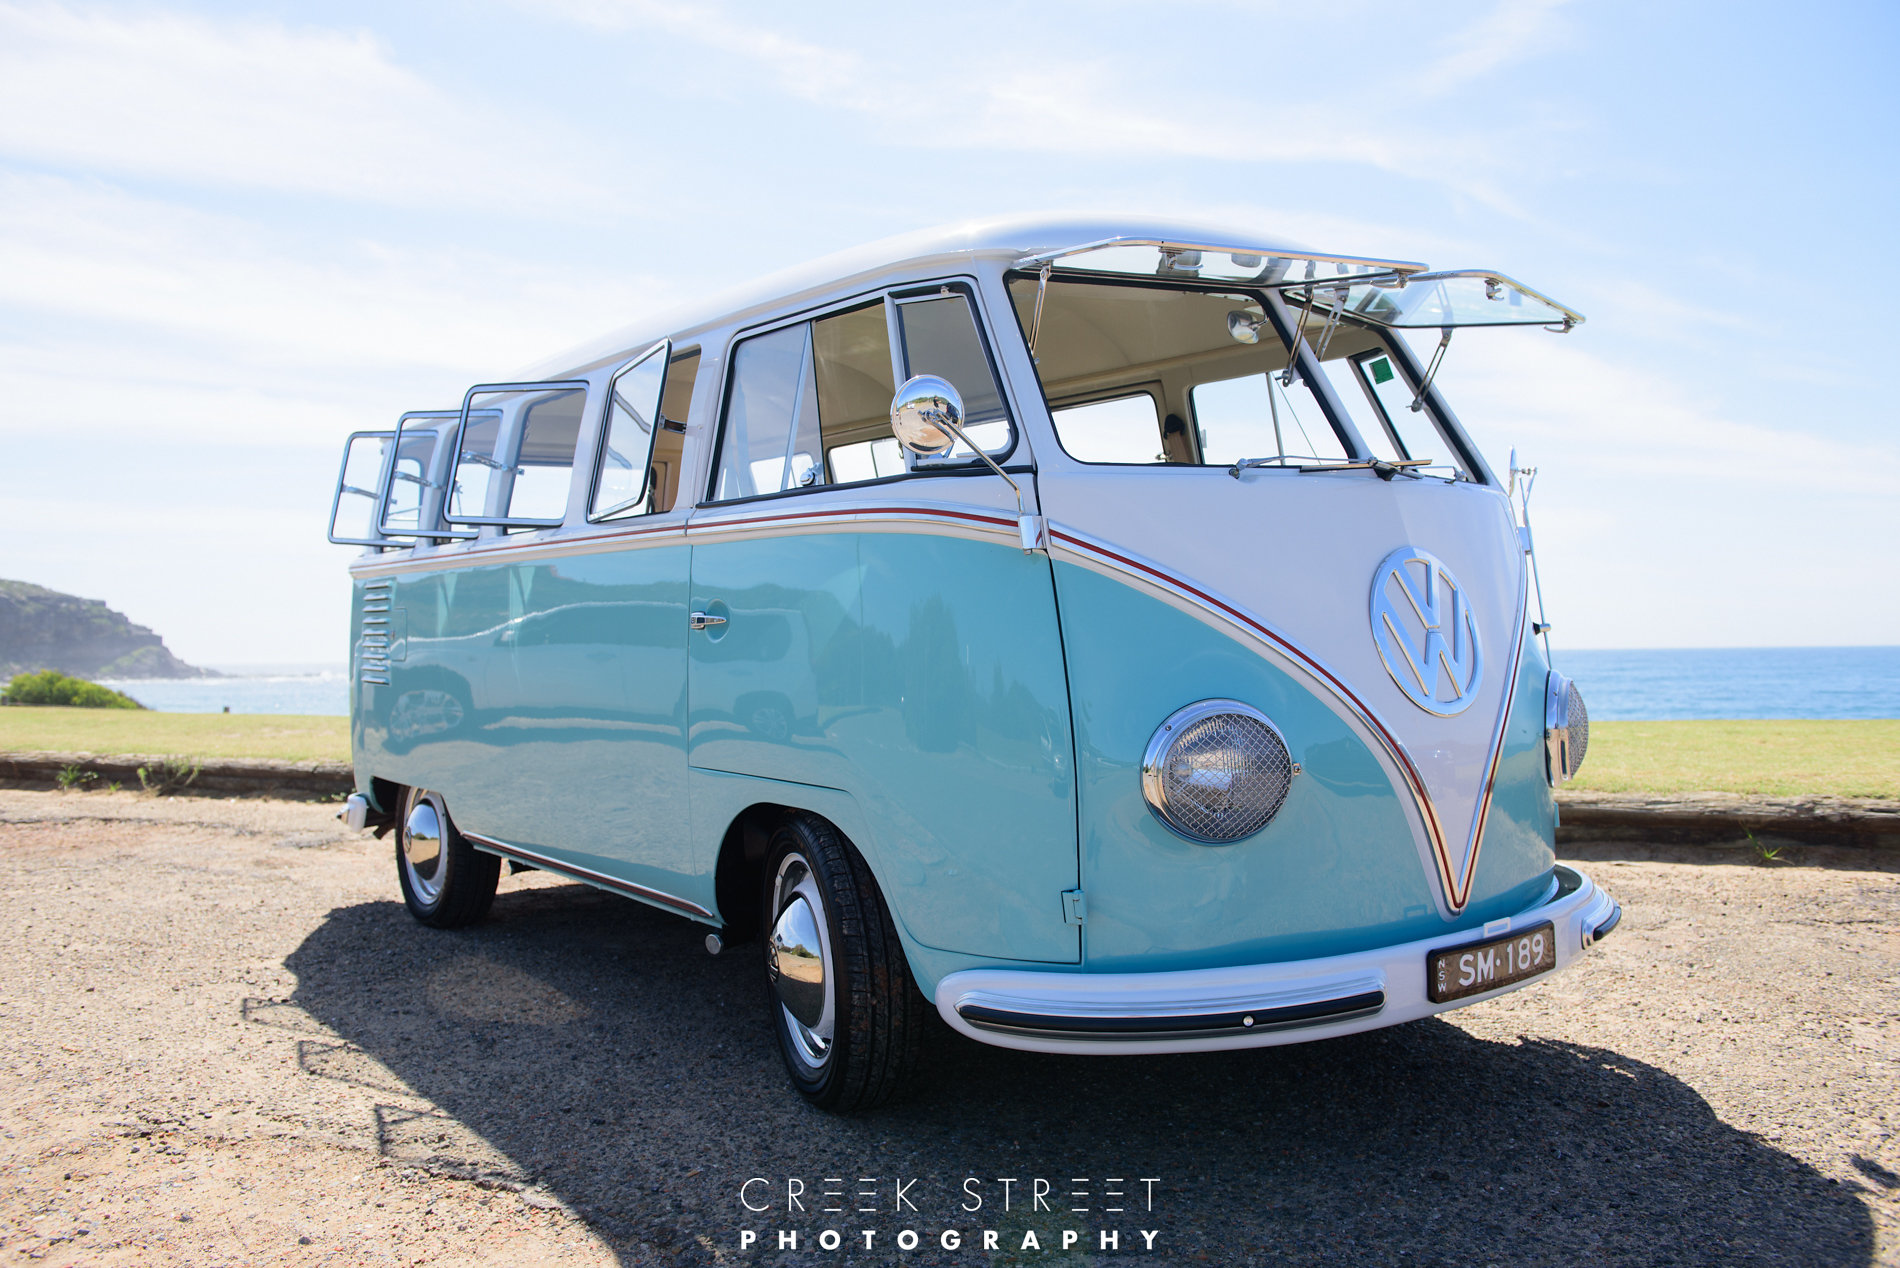 CLIICK here to CONTACT THE AWARD WINNING KOMBI WEDDINGS FOR KOMBI HIRE SYDNEY - KOMBI HIRE NORTHERN BEACHES